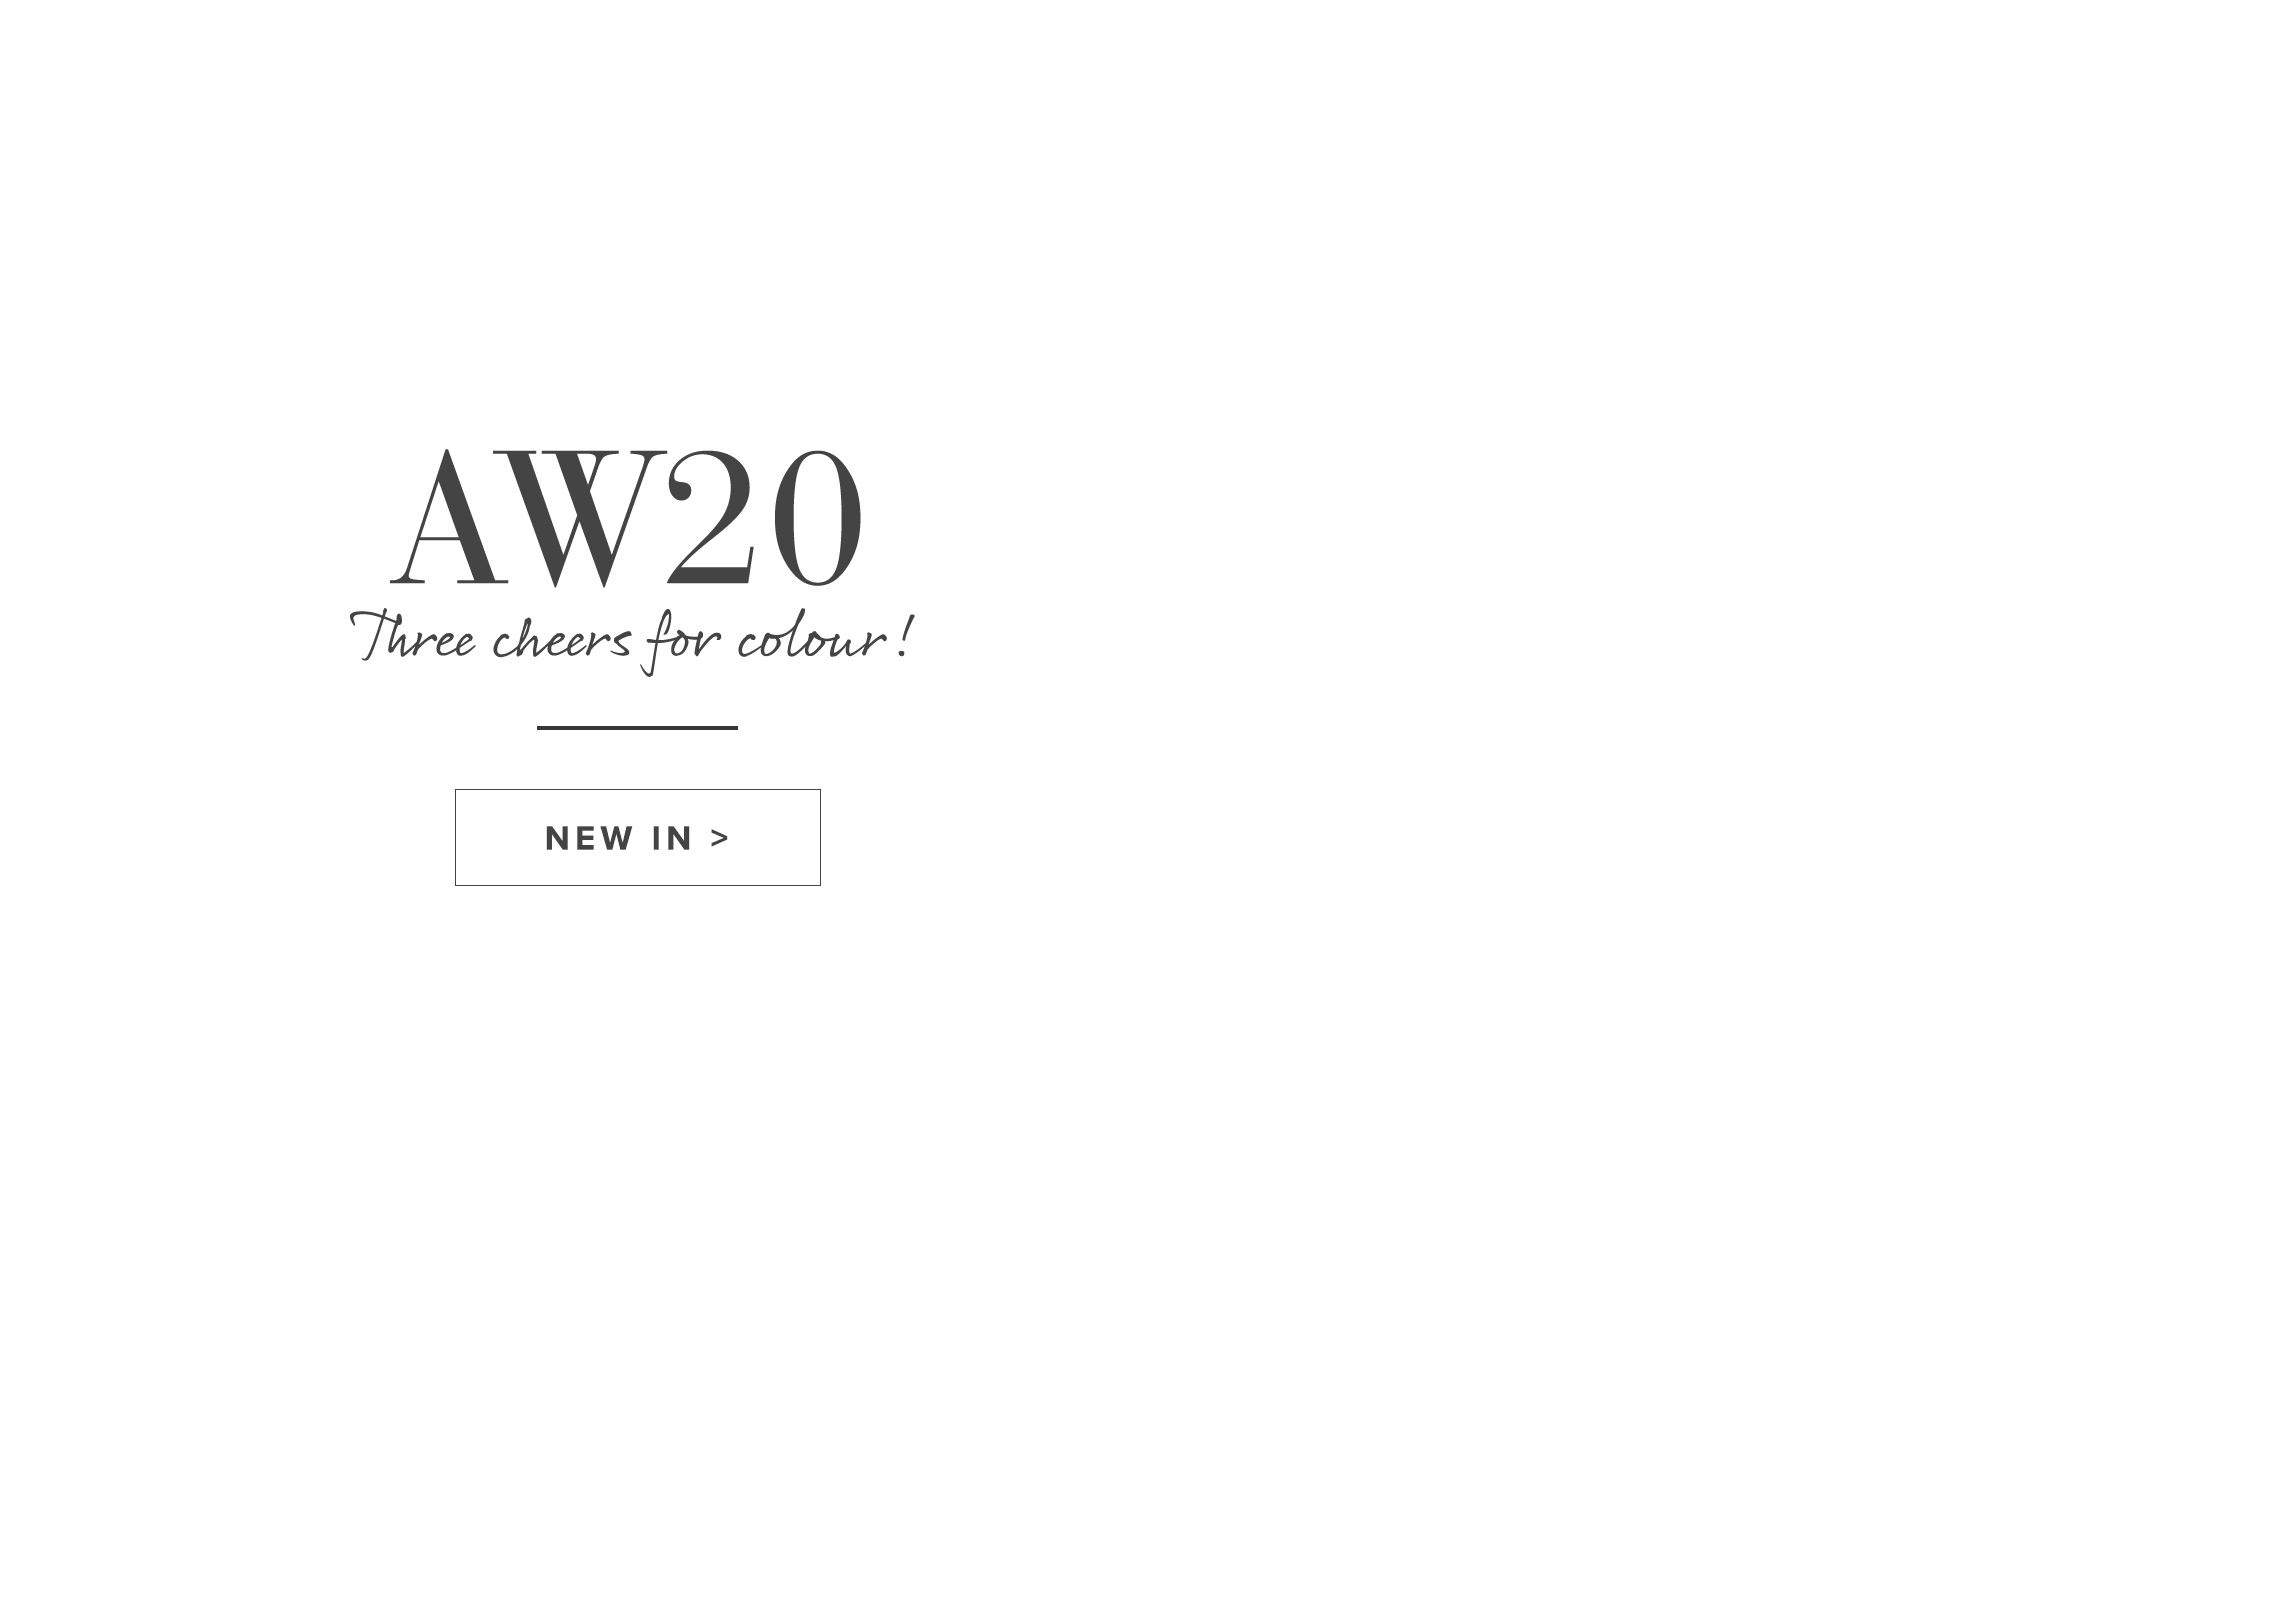 raw-main_overlay_aw20_a.png